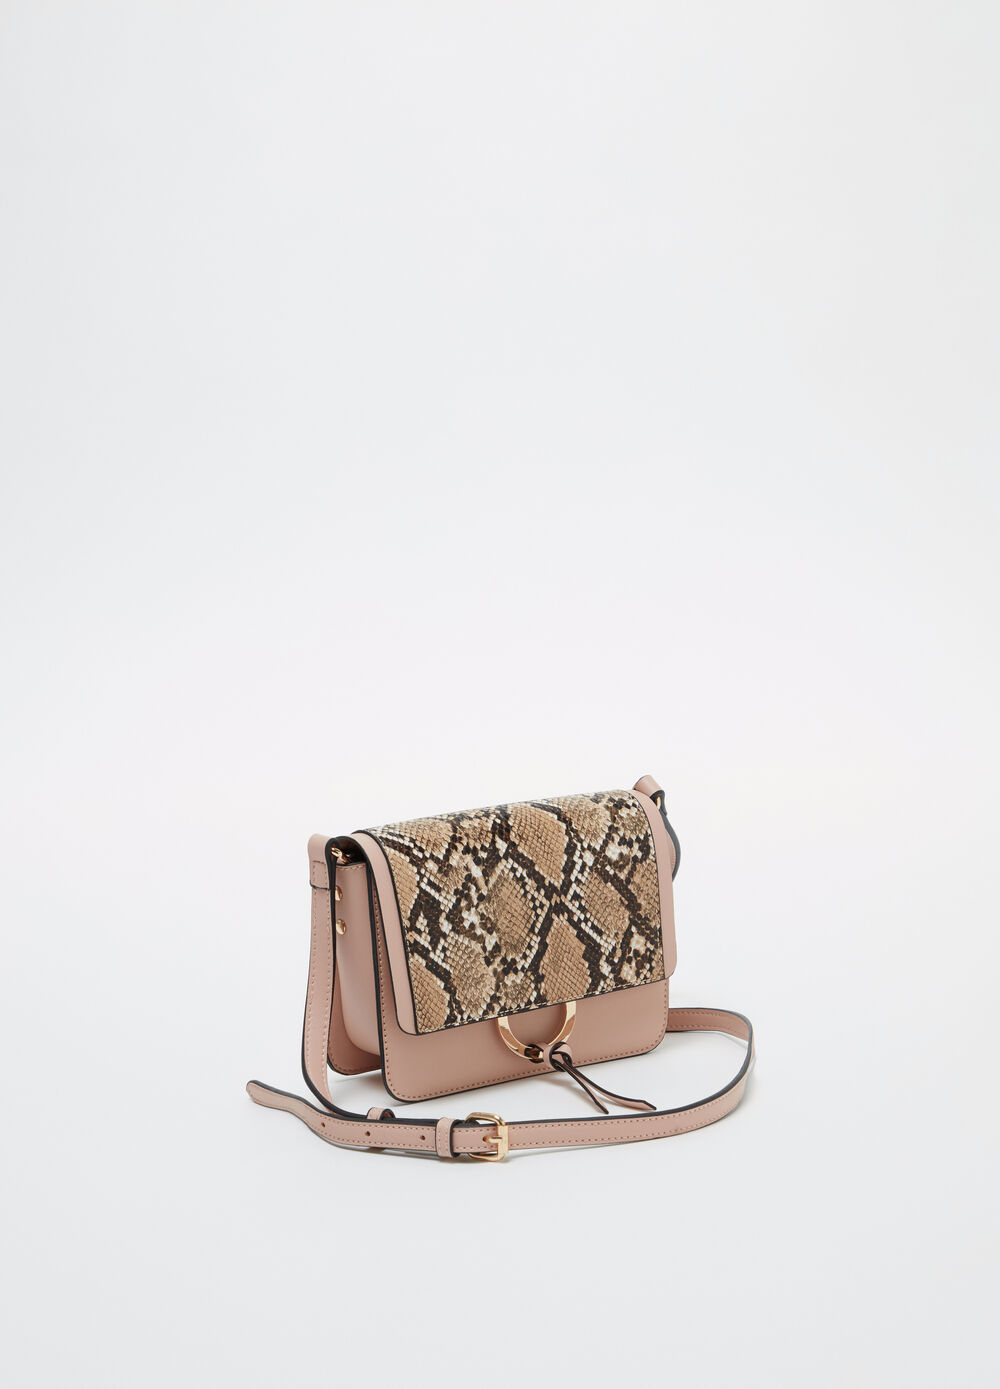 Boxy bag with snake print flap